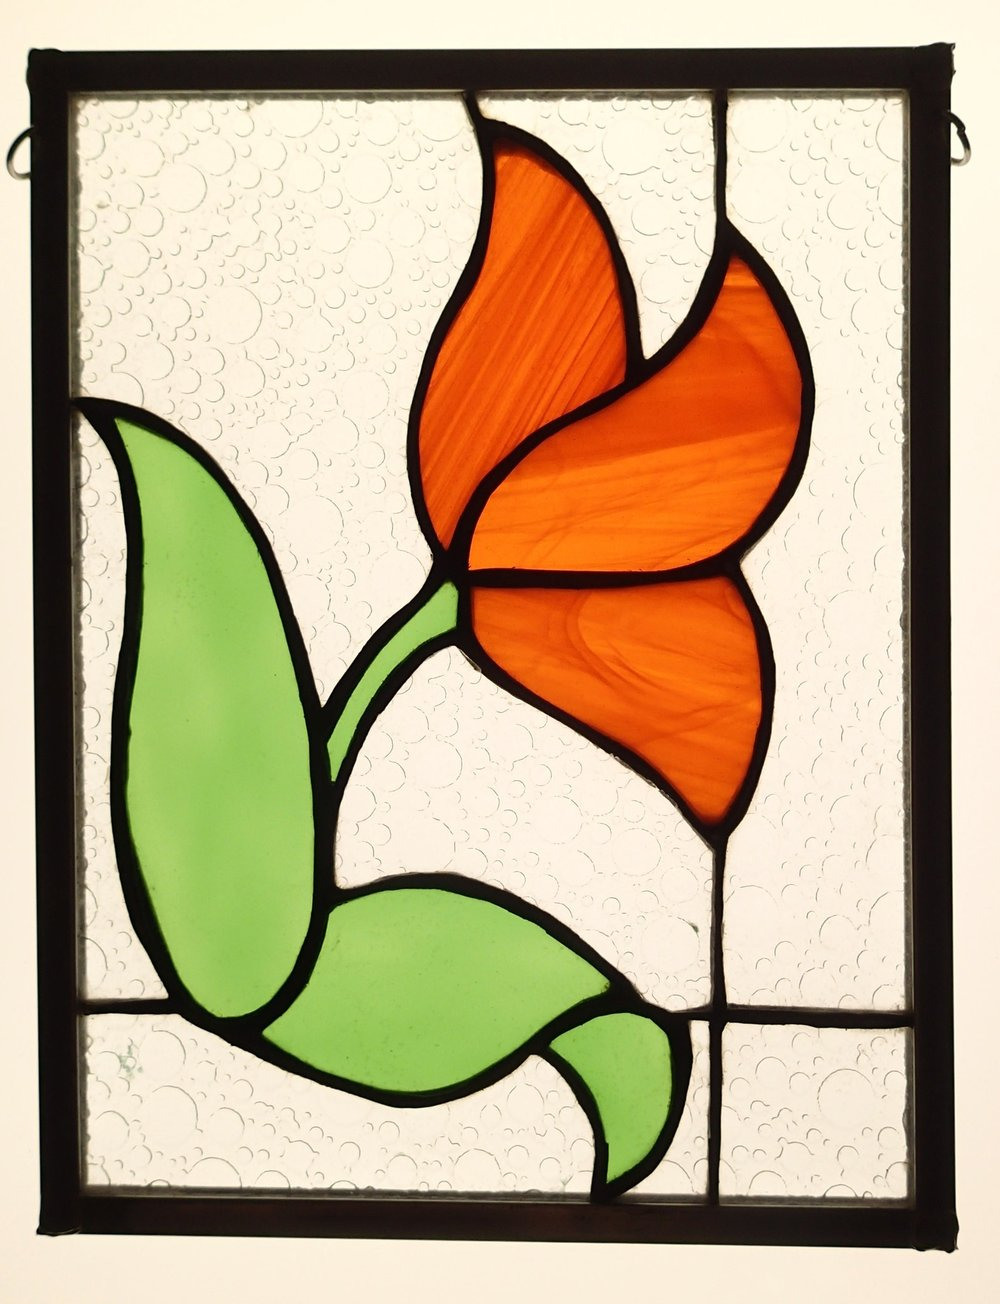 stained_glass_tulip.jpg